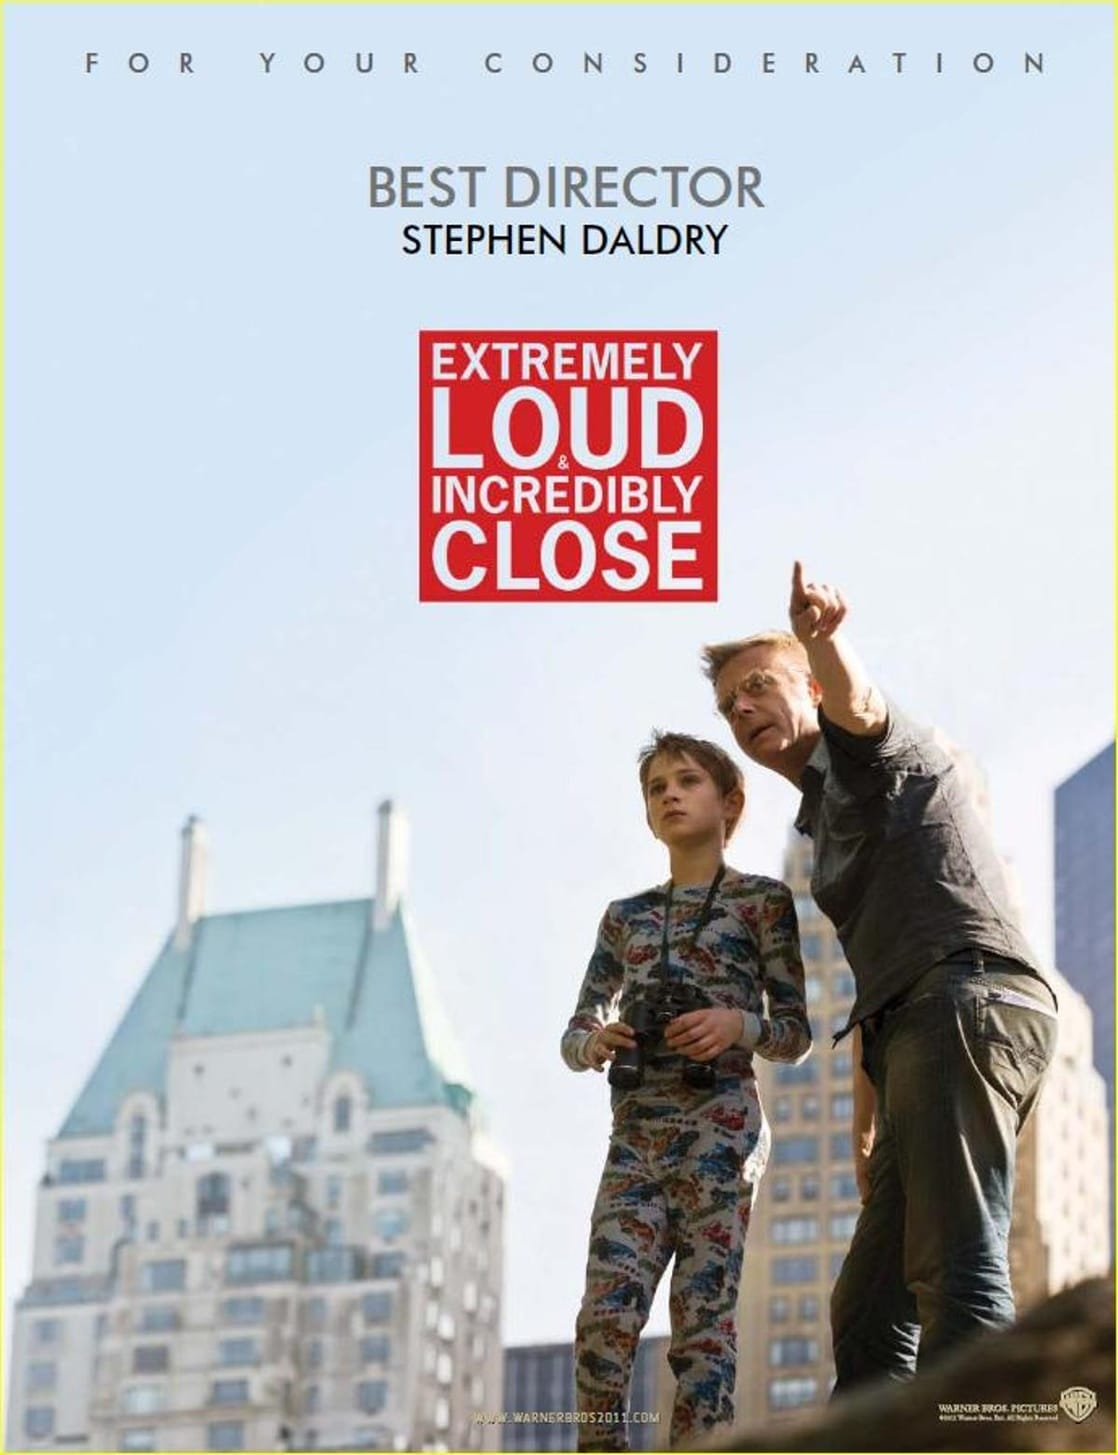 extremely loud and incredibly close essay questions Extremely loud and incredibly close [jonathan safran foer] on amazoncom free shipping on qualifying offers jonathan safran foer emerged as one of the most original writers of his generation with his best-selling debut novel.